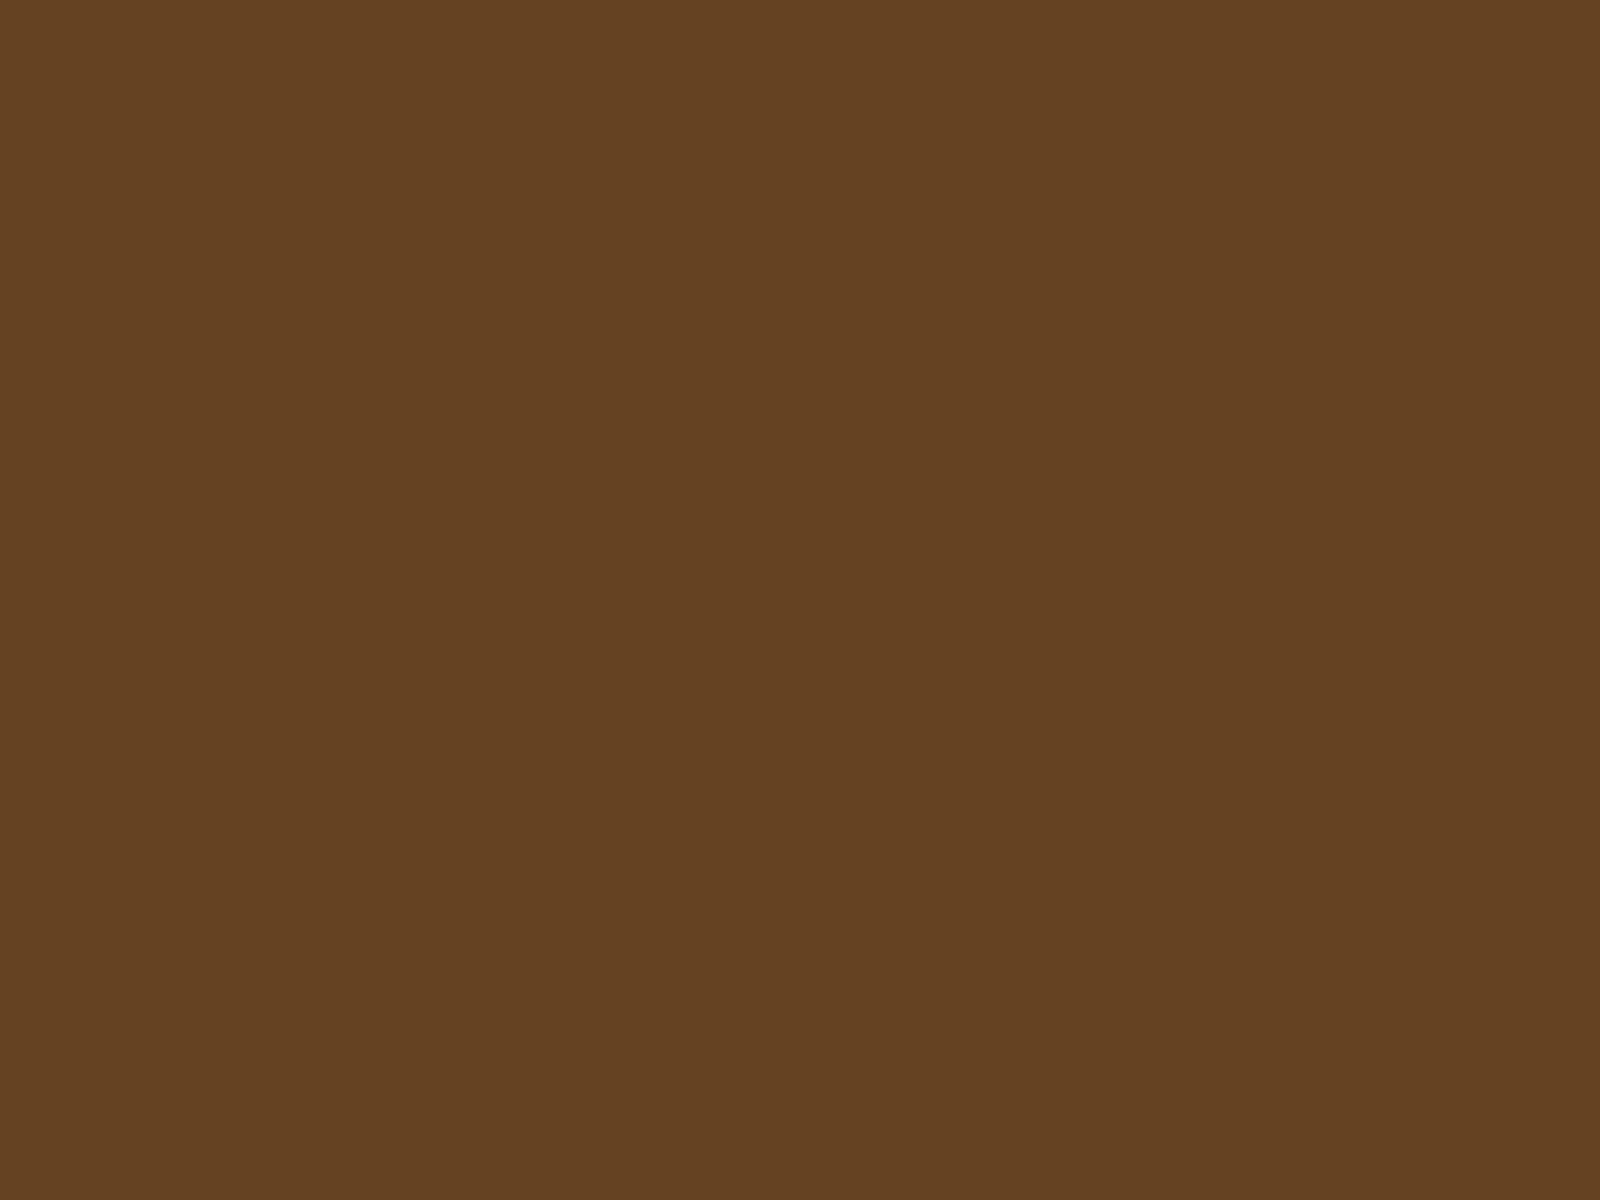 1600x1200 Dark Brown Solid Color Background